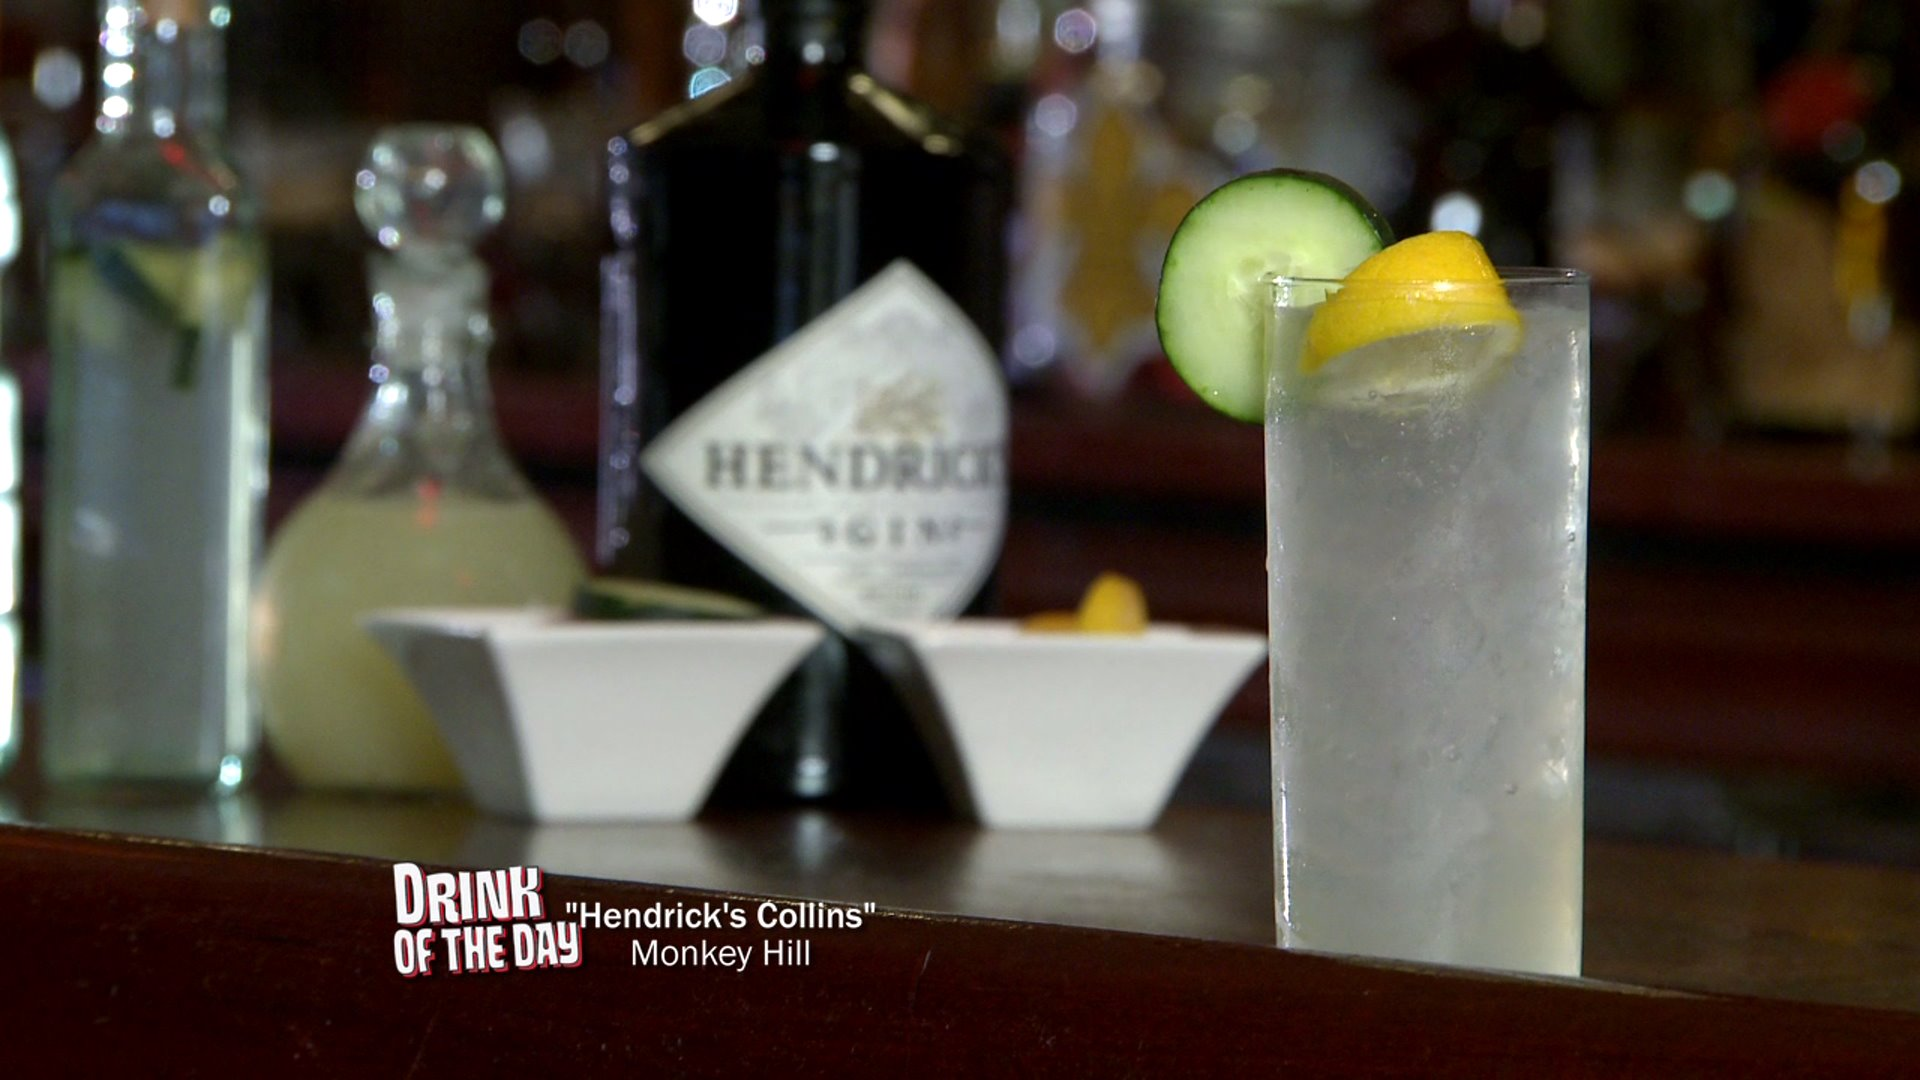 Drink of the Day: Hendrick's Collins